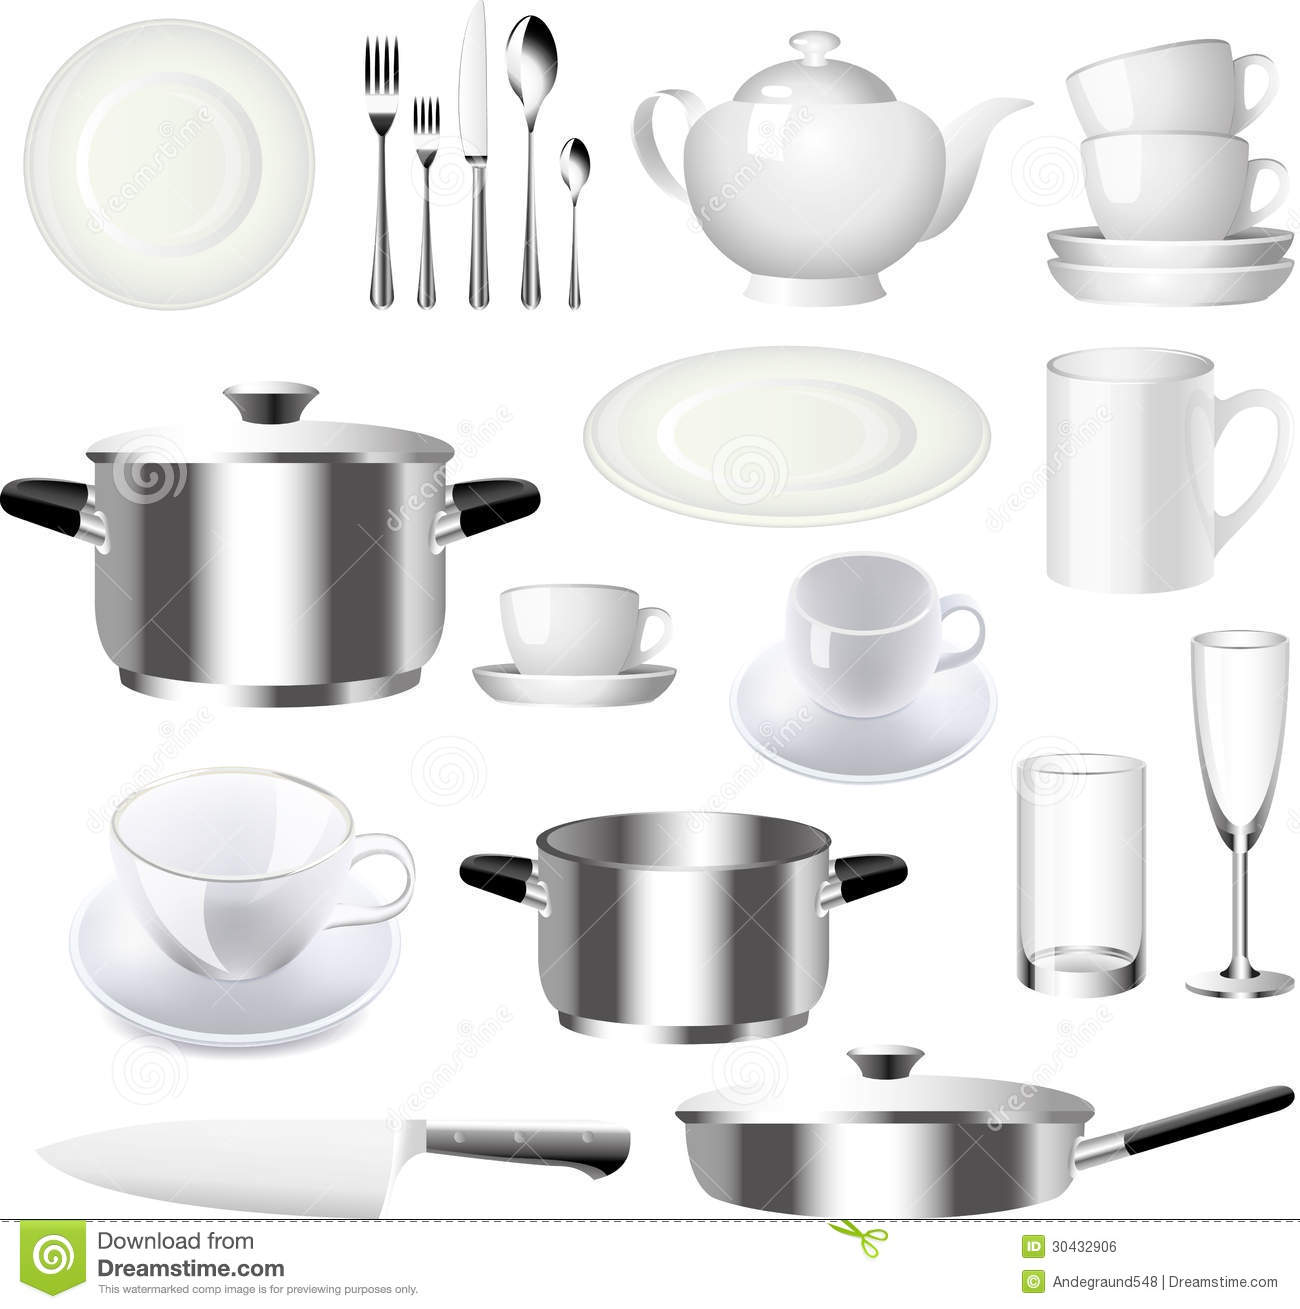 Crockery and kitchen ware set royalty free stock image for Art cuisine evolution 10 piece cooking set